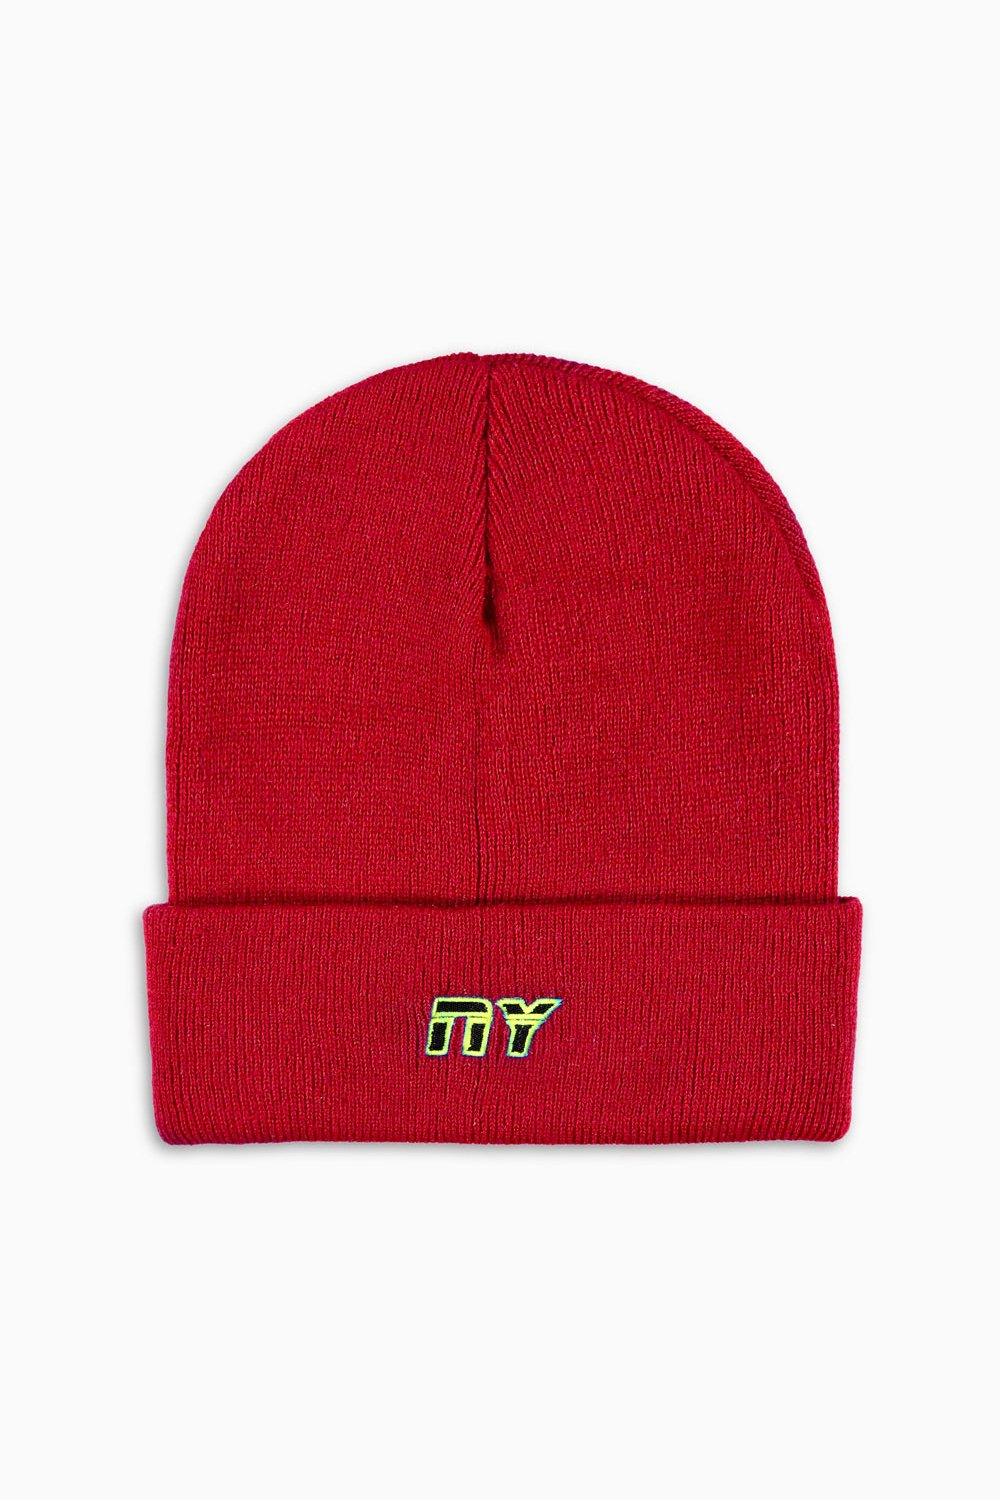 NY starter beanie / red + neon + blk